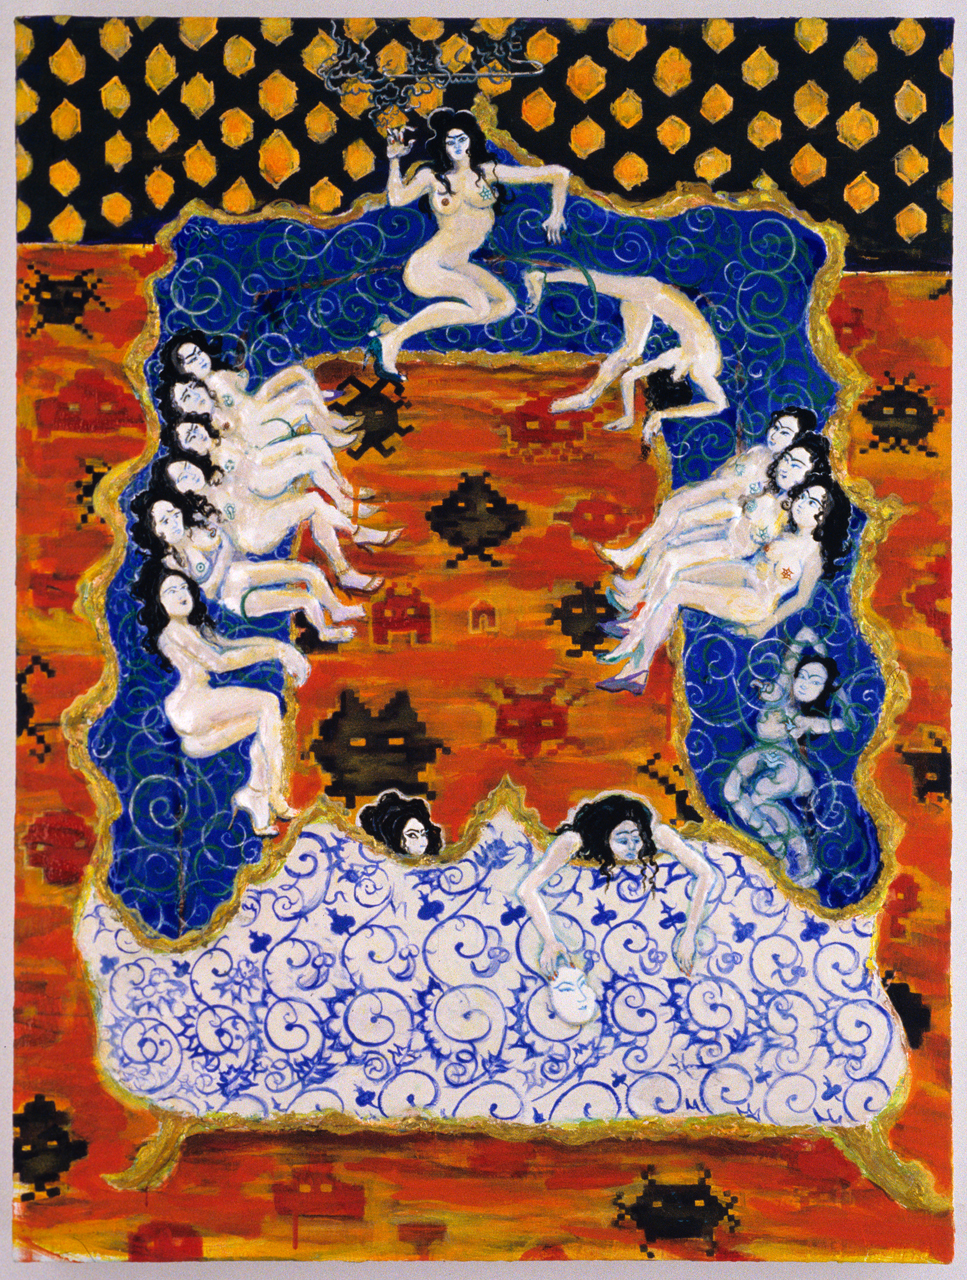 Hamam Harem Louis Quatorze Chaise, 2005, Gesso, acrylic and nail polish on panel, 32 x 24 in